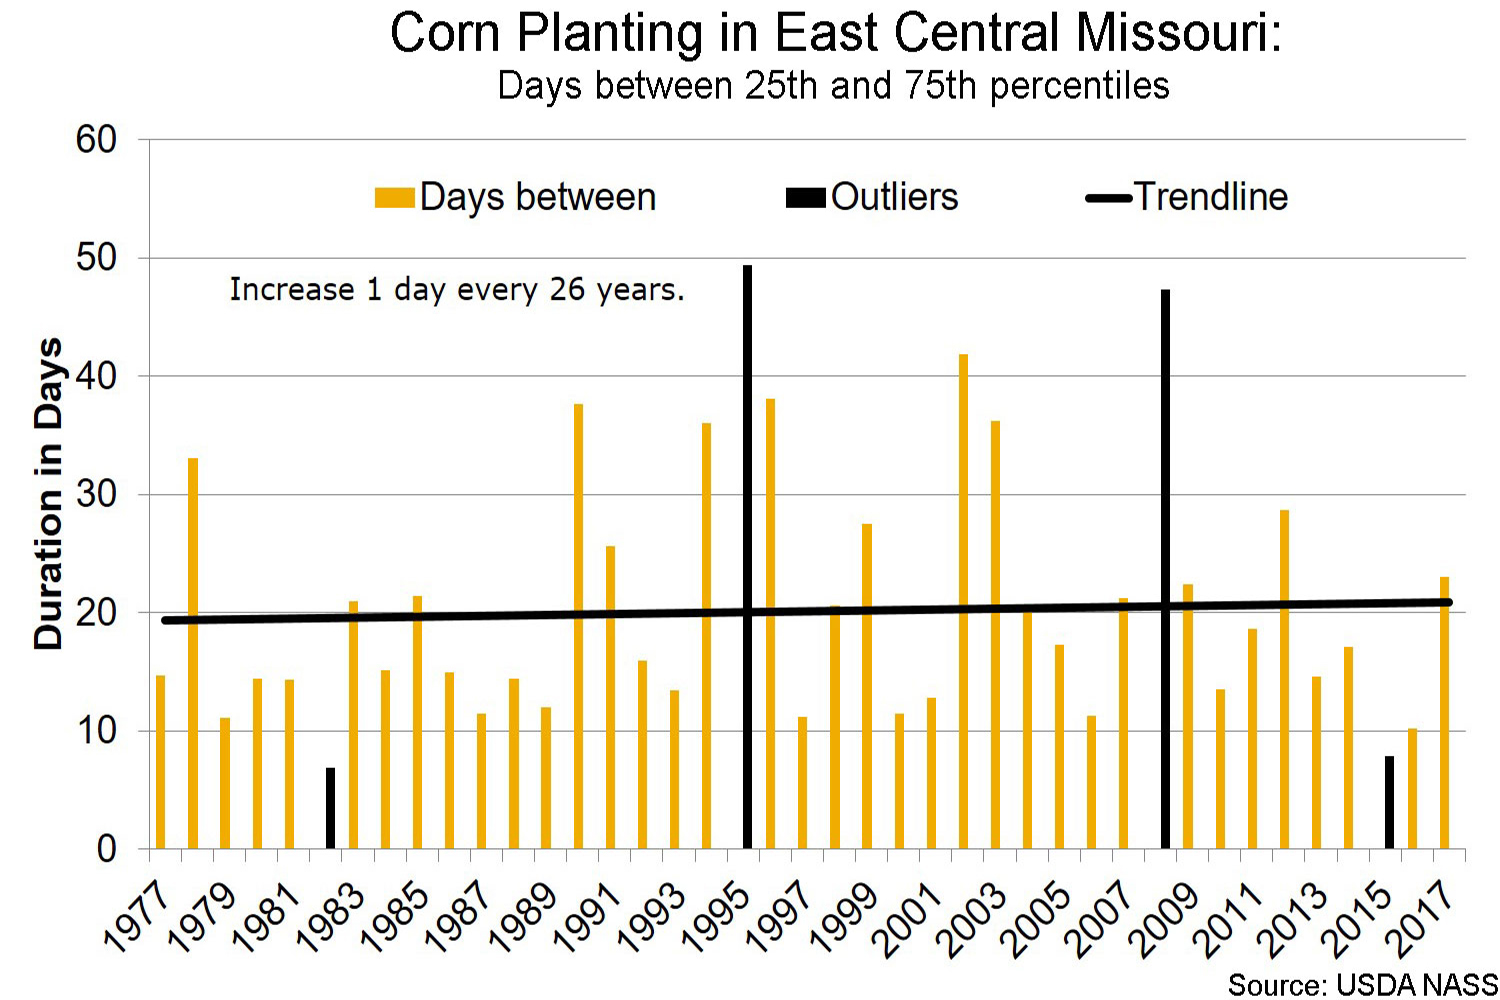 Corn planting in east central Missouri days between 25th and 75th percentiles chart